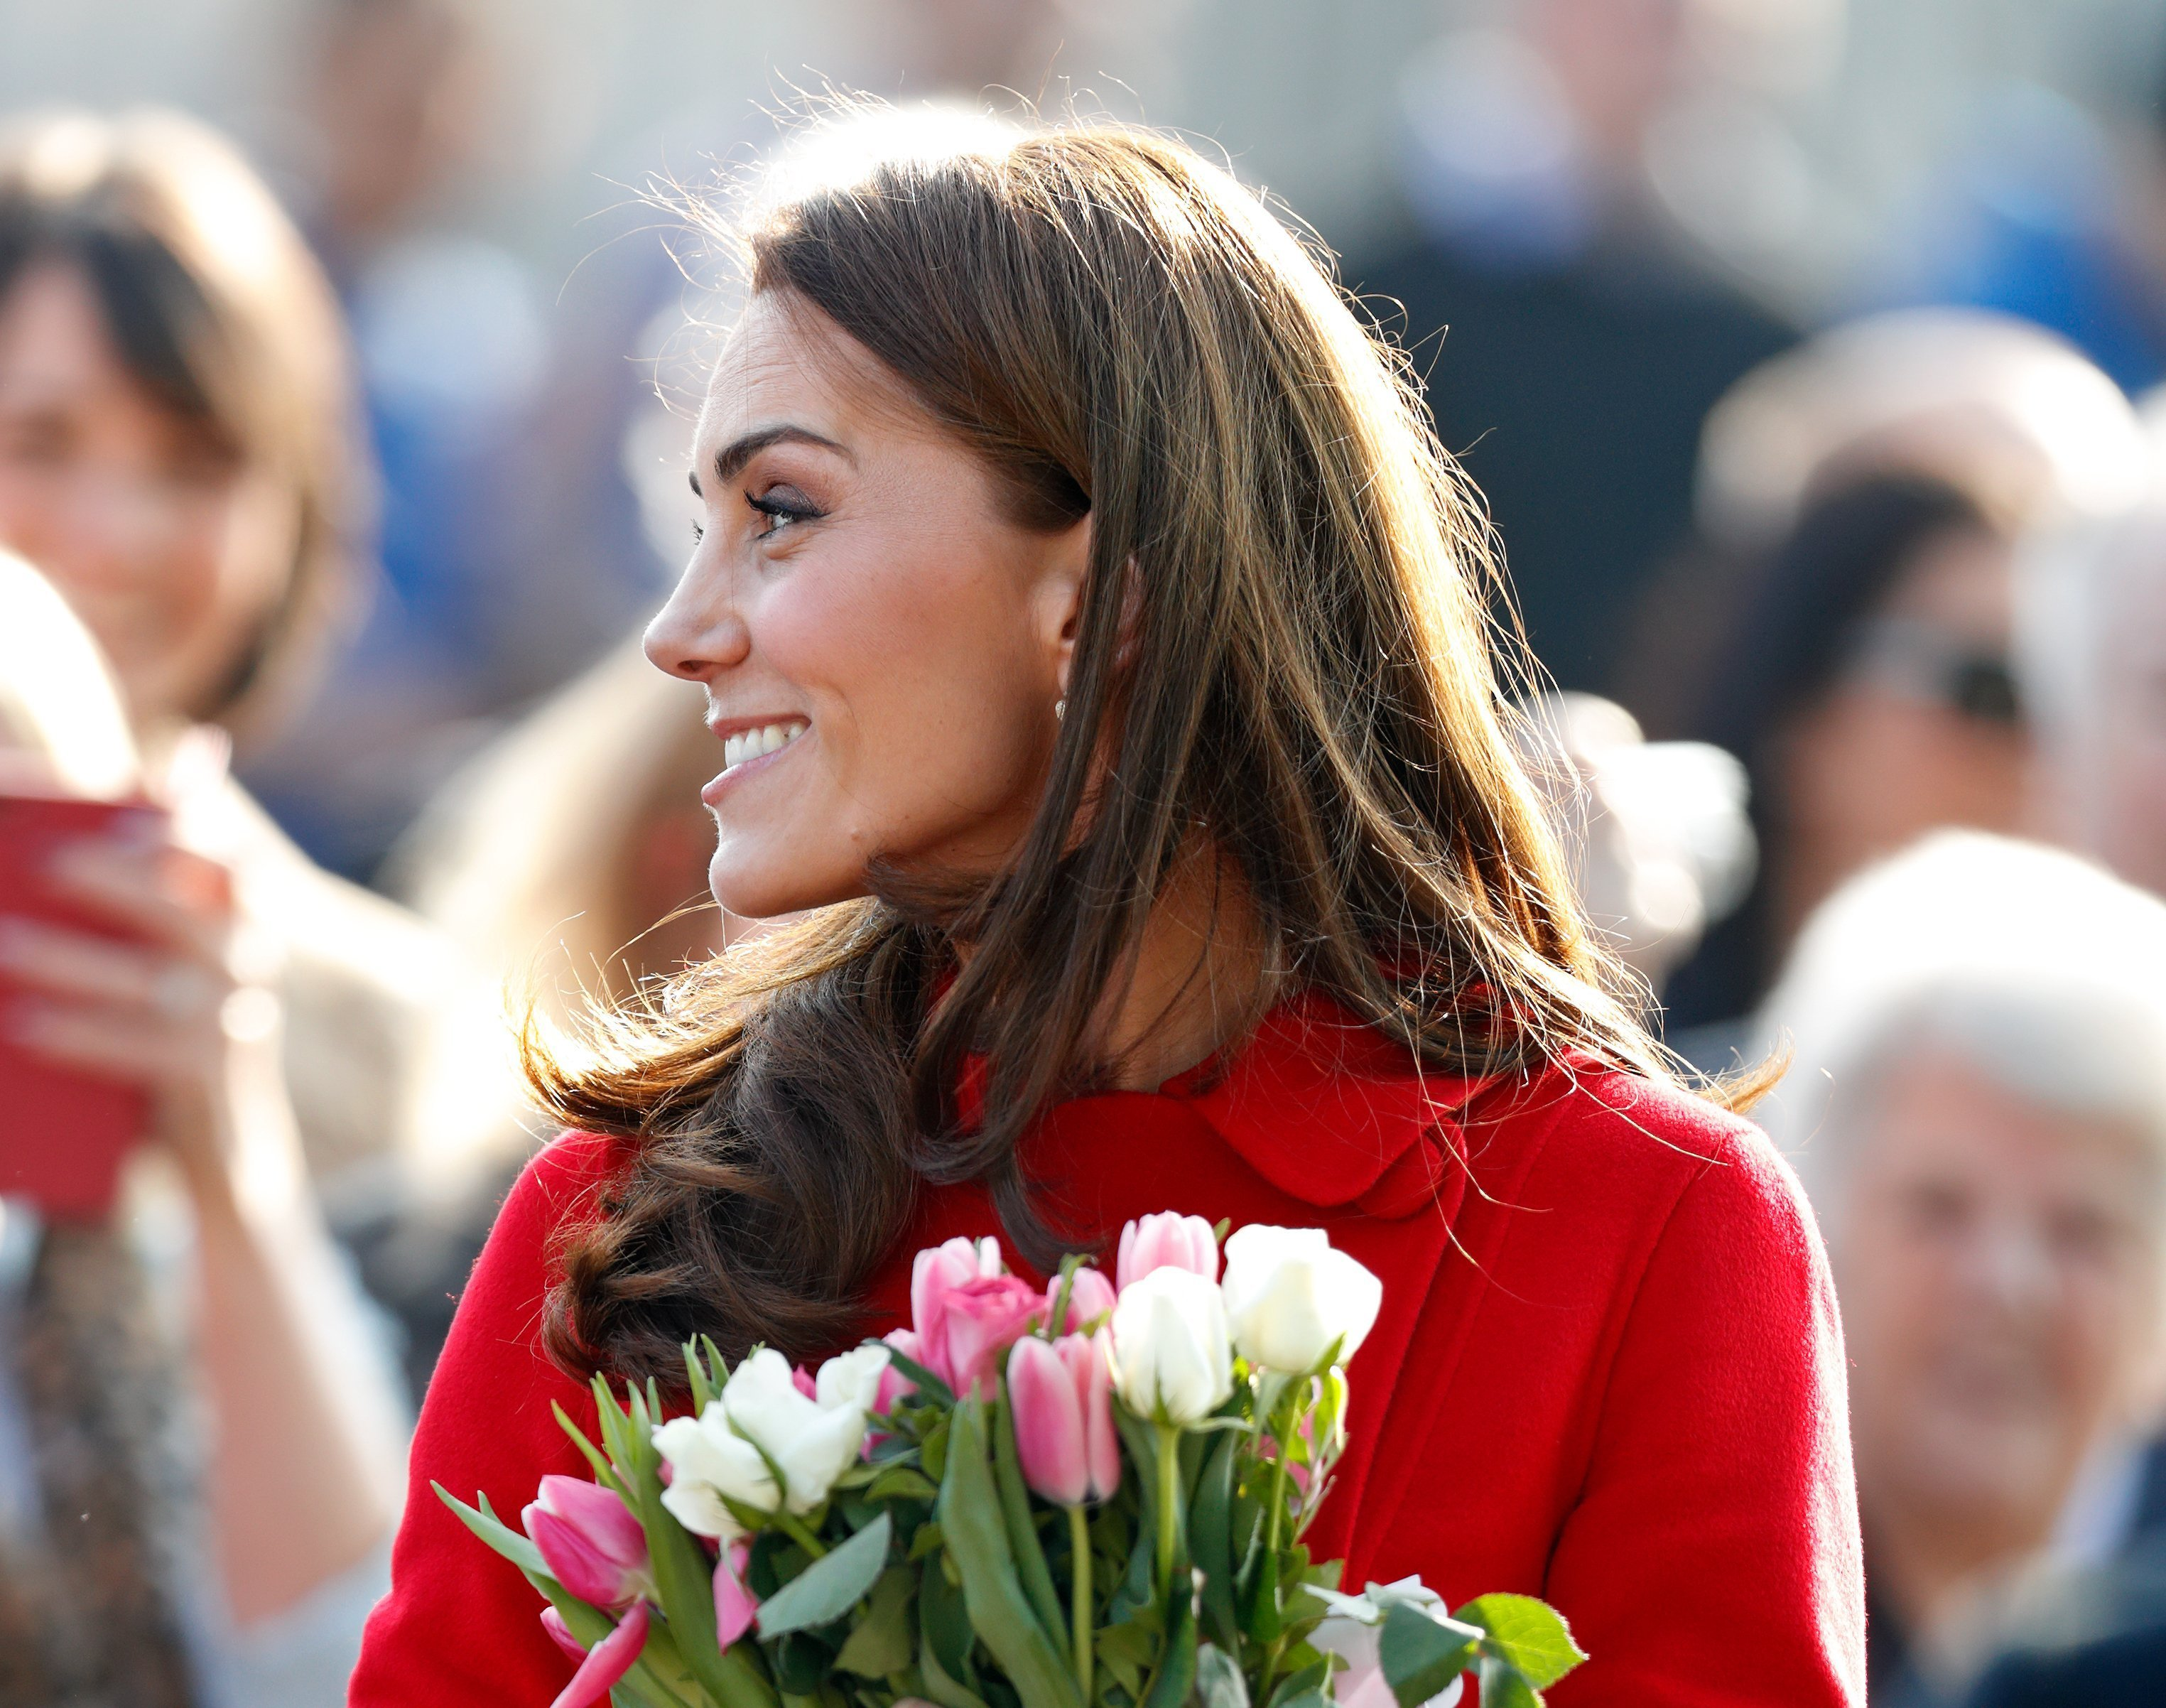 Kate Middleton arriving in Northern Ireland in February 2019 | Photo: Getty Images